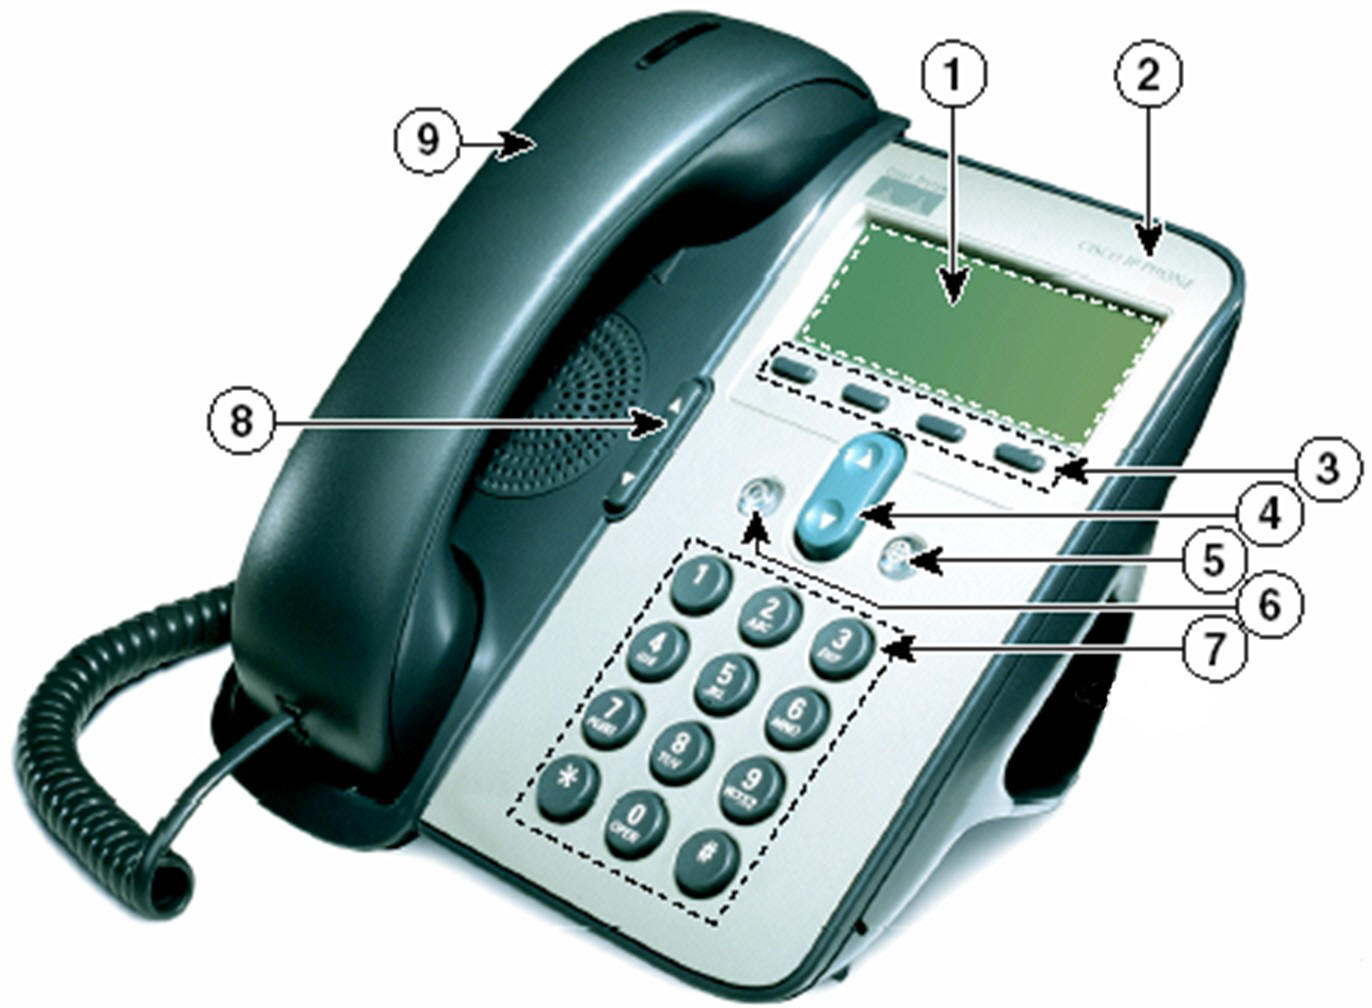 How to use your 7911 ip phone